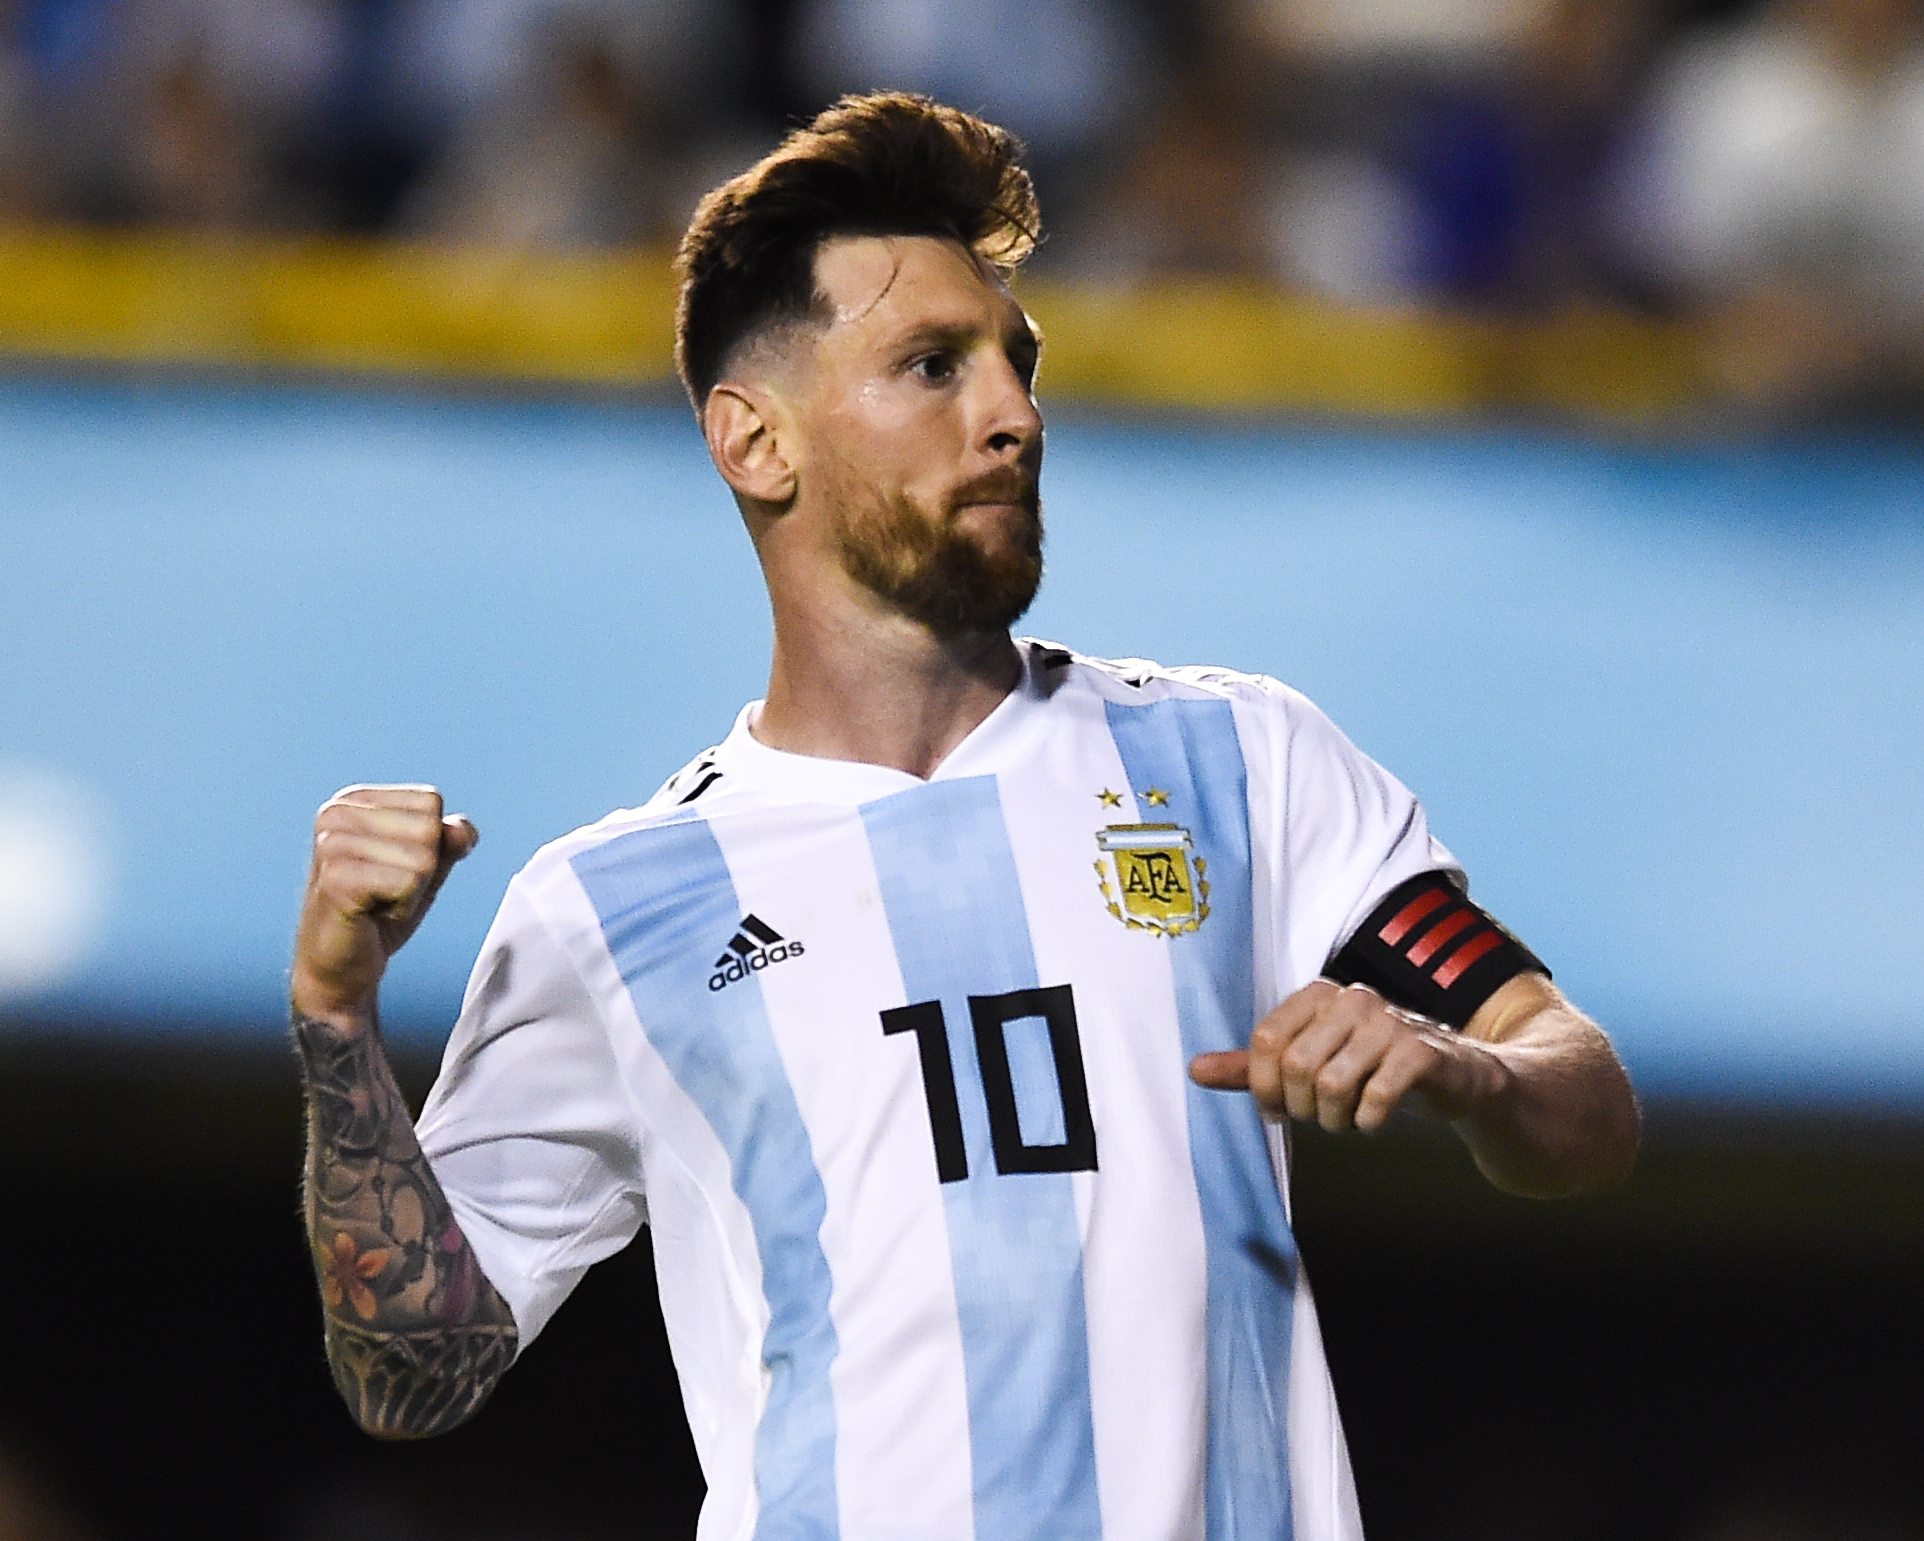 John Hartson has tipped Lionel Messi to help Argentina win the World Cup. (Photo by Marcelo Endelli/Getty Images).